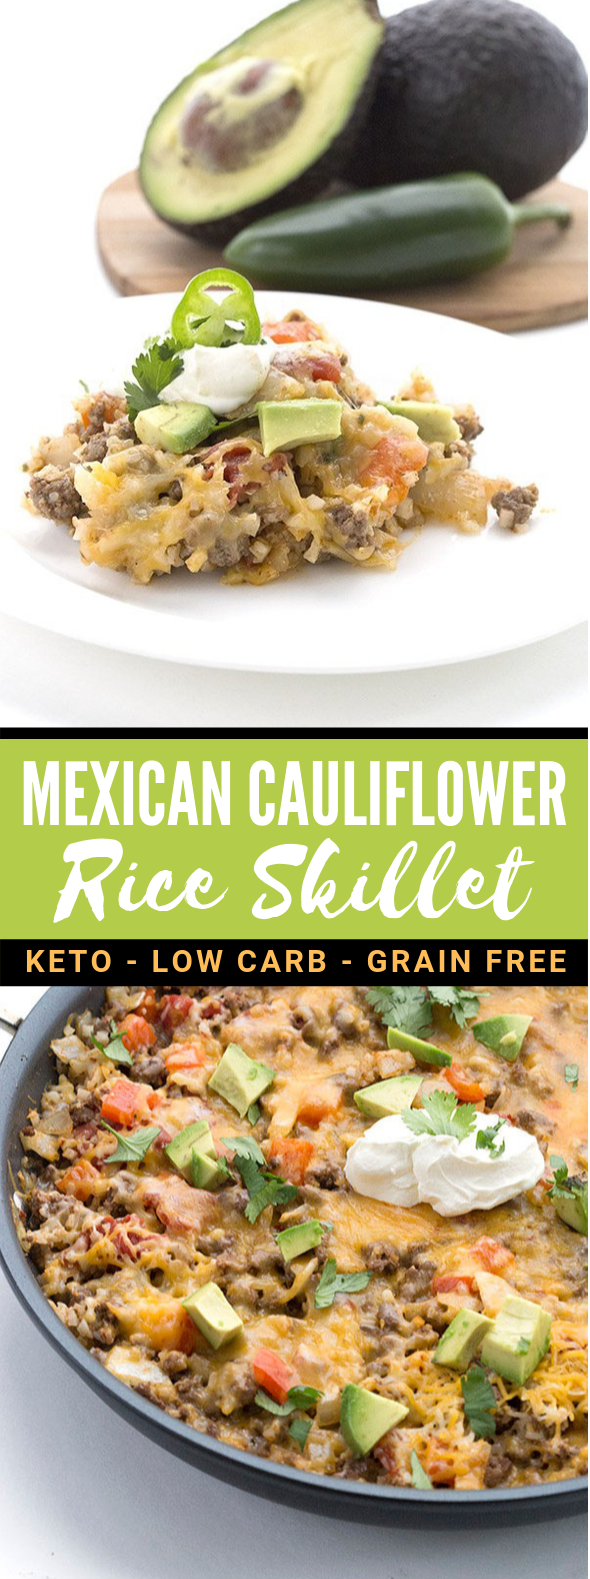 LOW CARB MEXICAN CAULIFLOWER RICE #thm #diet